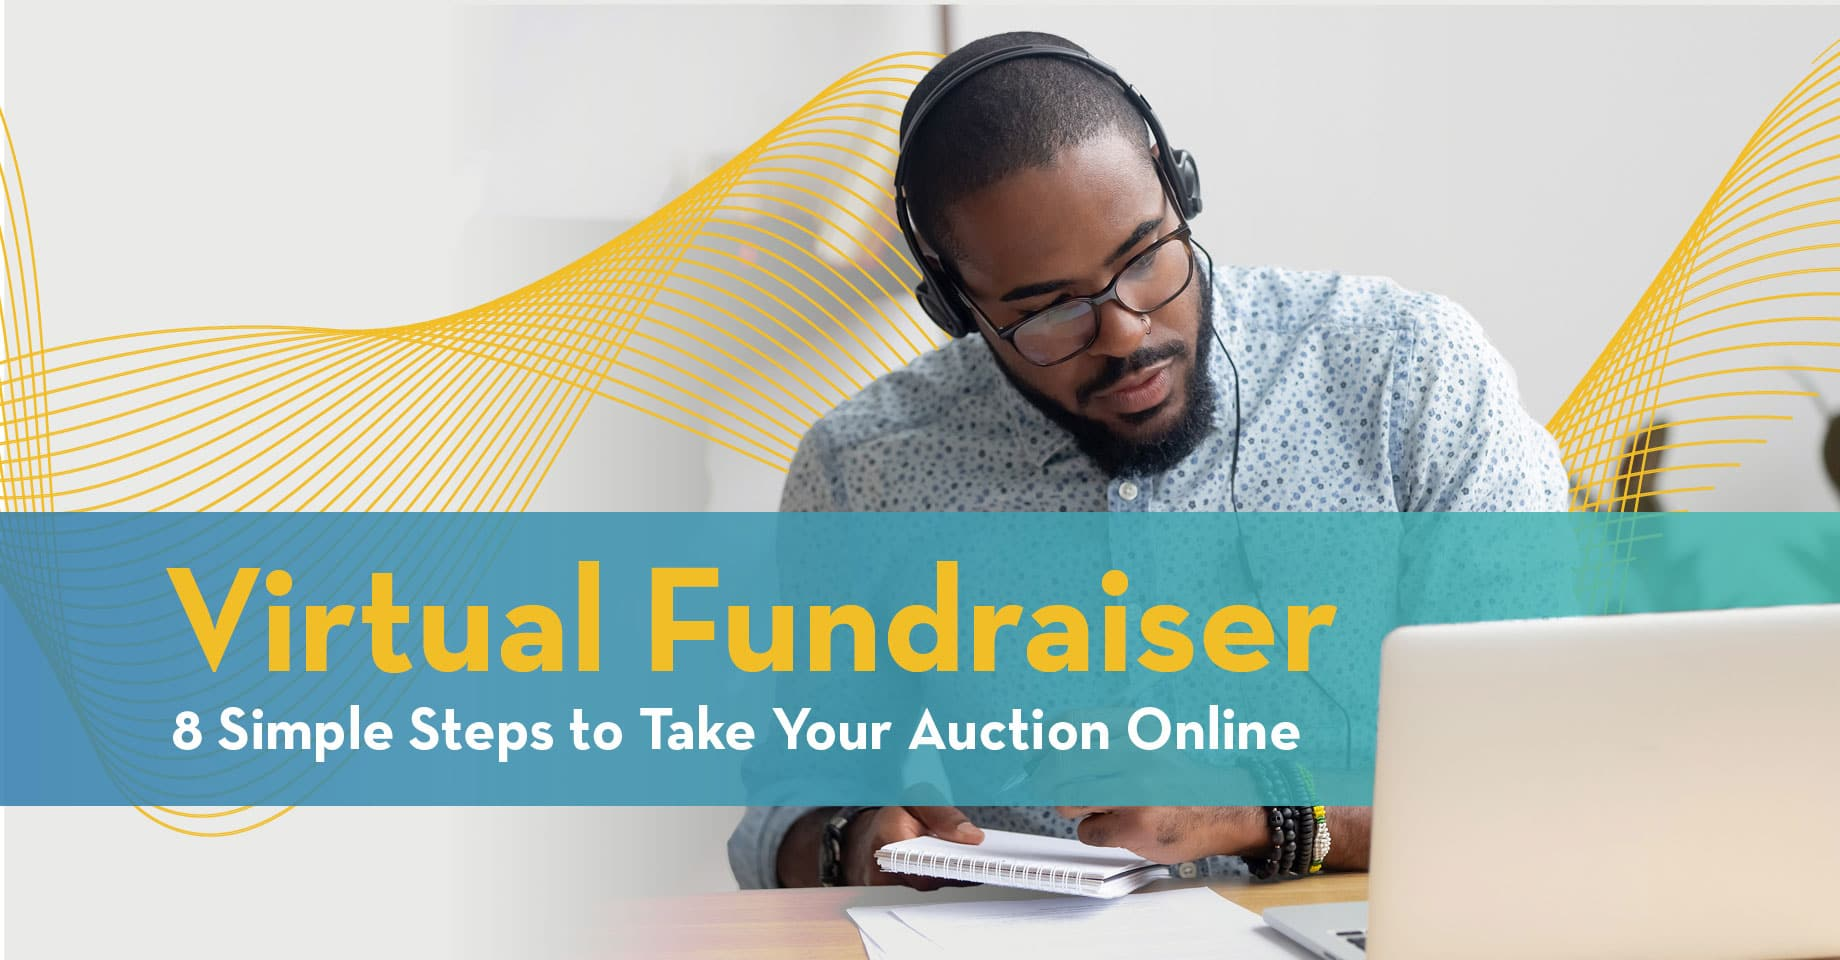 Virtual Fundraiser - 8 Simple Steps to Take Your Auction Online